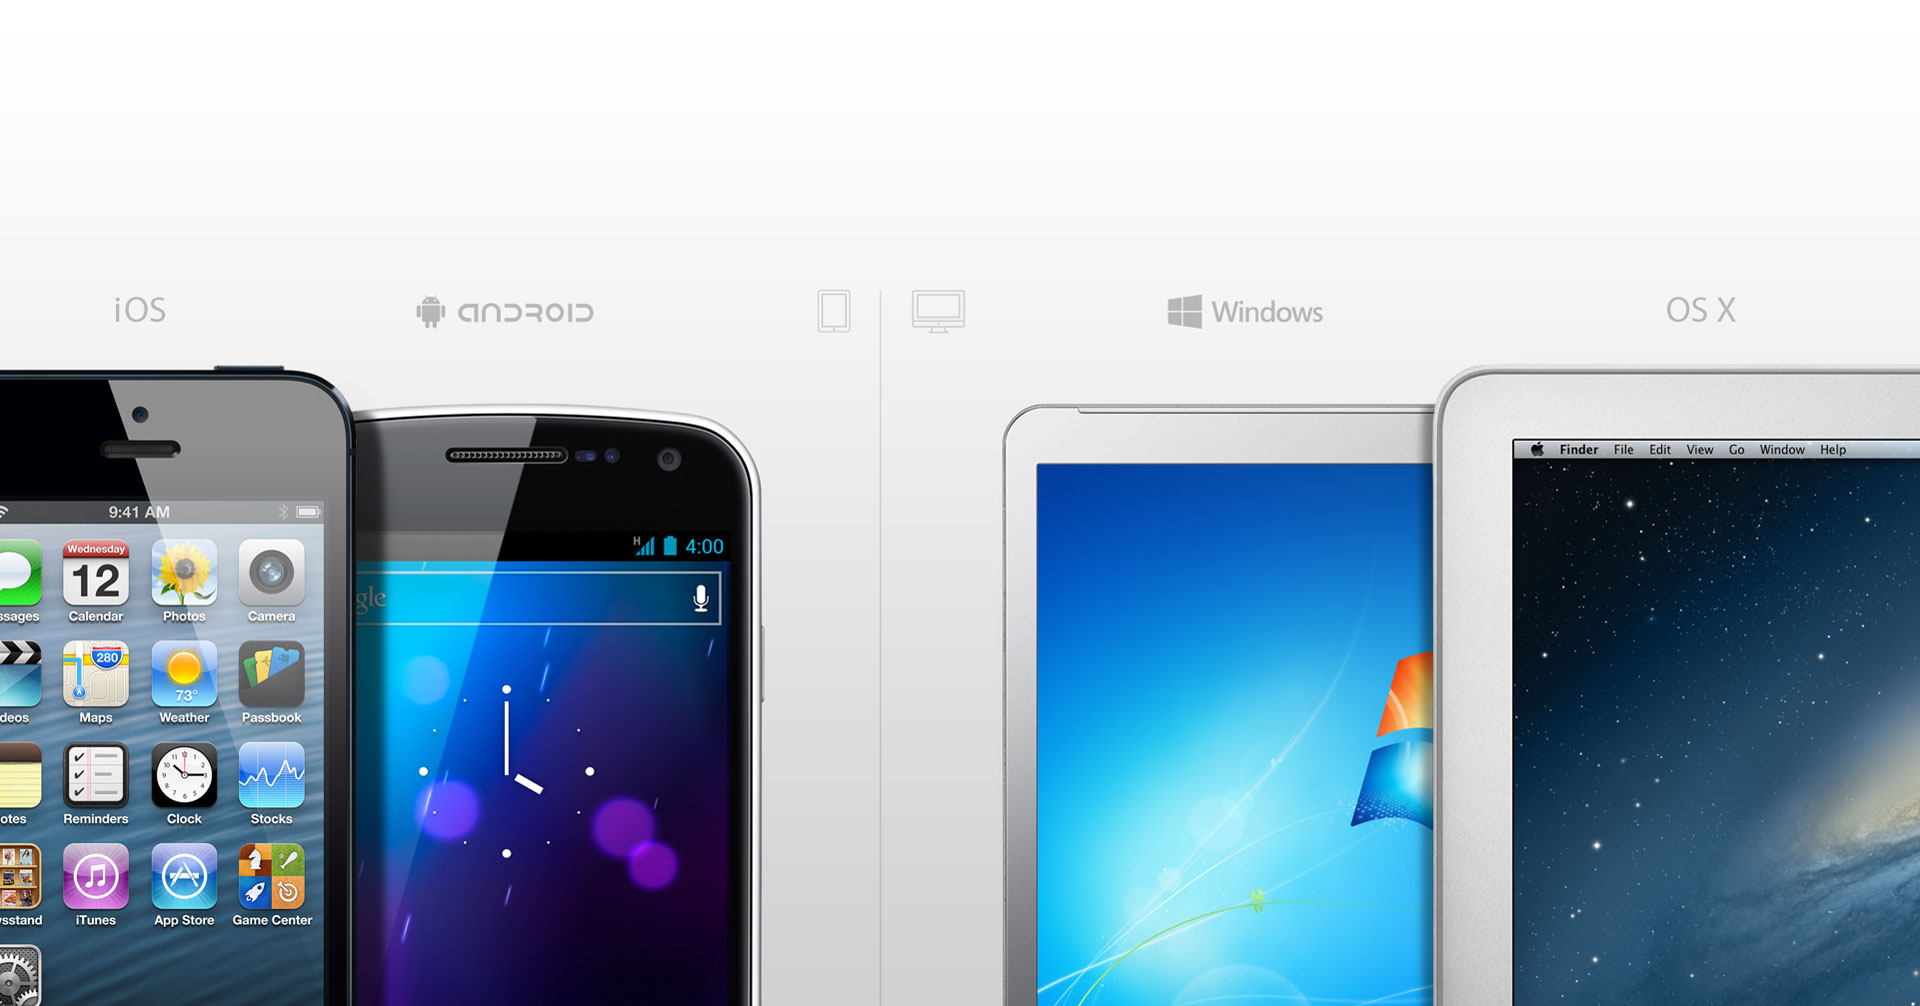 iOS, Android, Windows, OS X